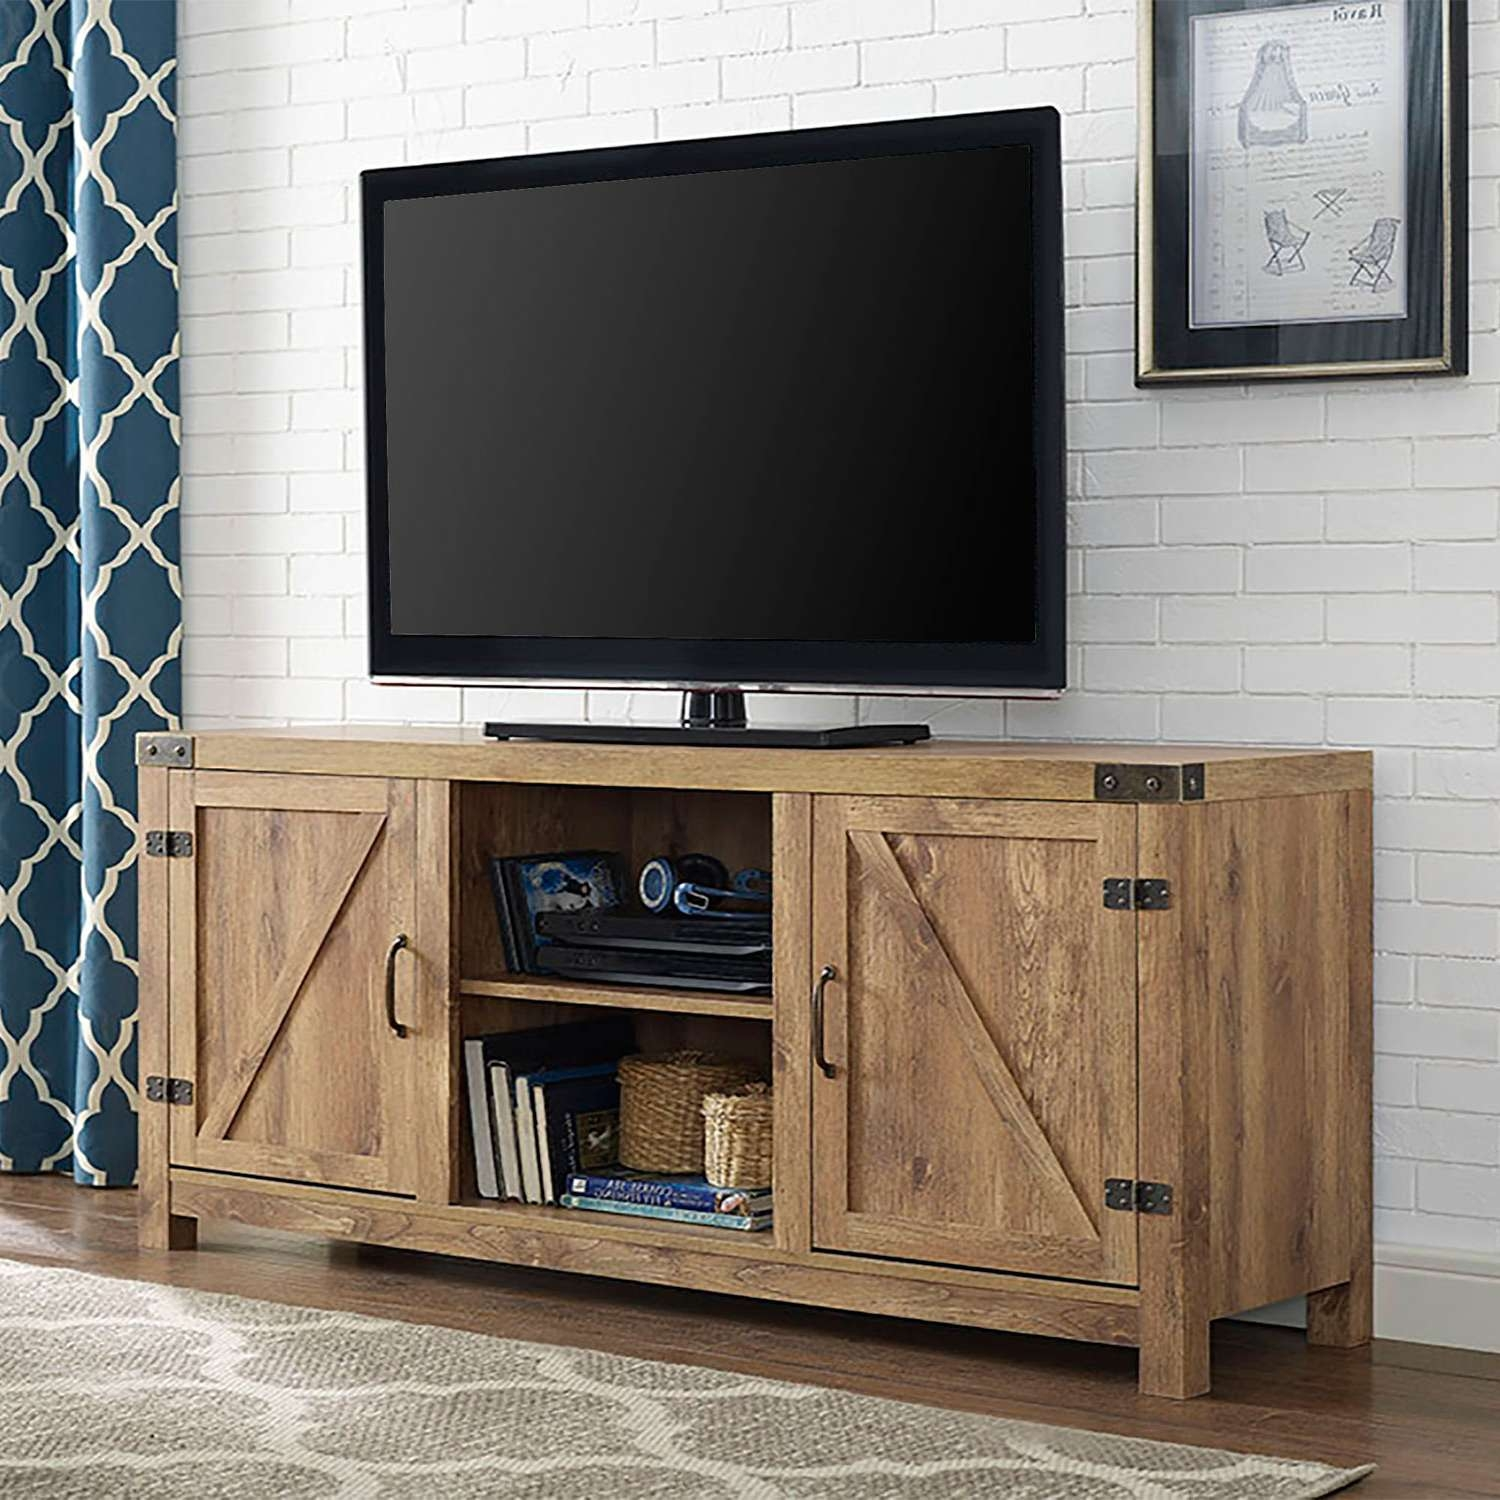 Tv Stands & Cabinets On Sale | Bellacor Inside Tv Stands 40 Inches Wide (View 9 of 15)